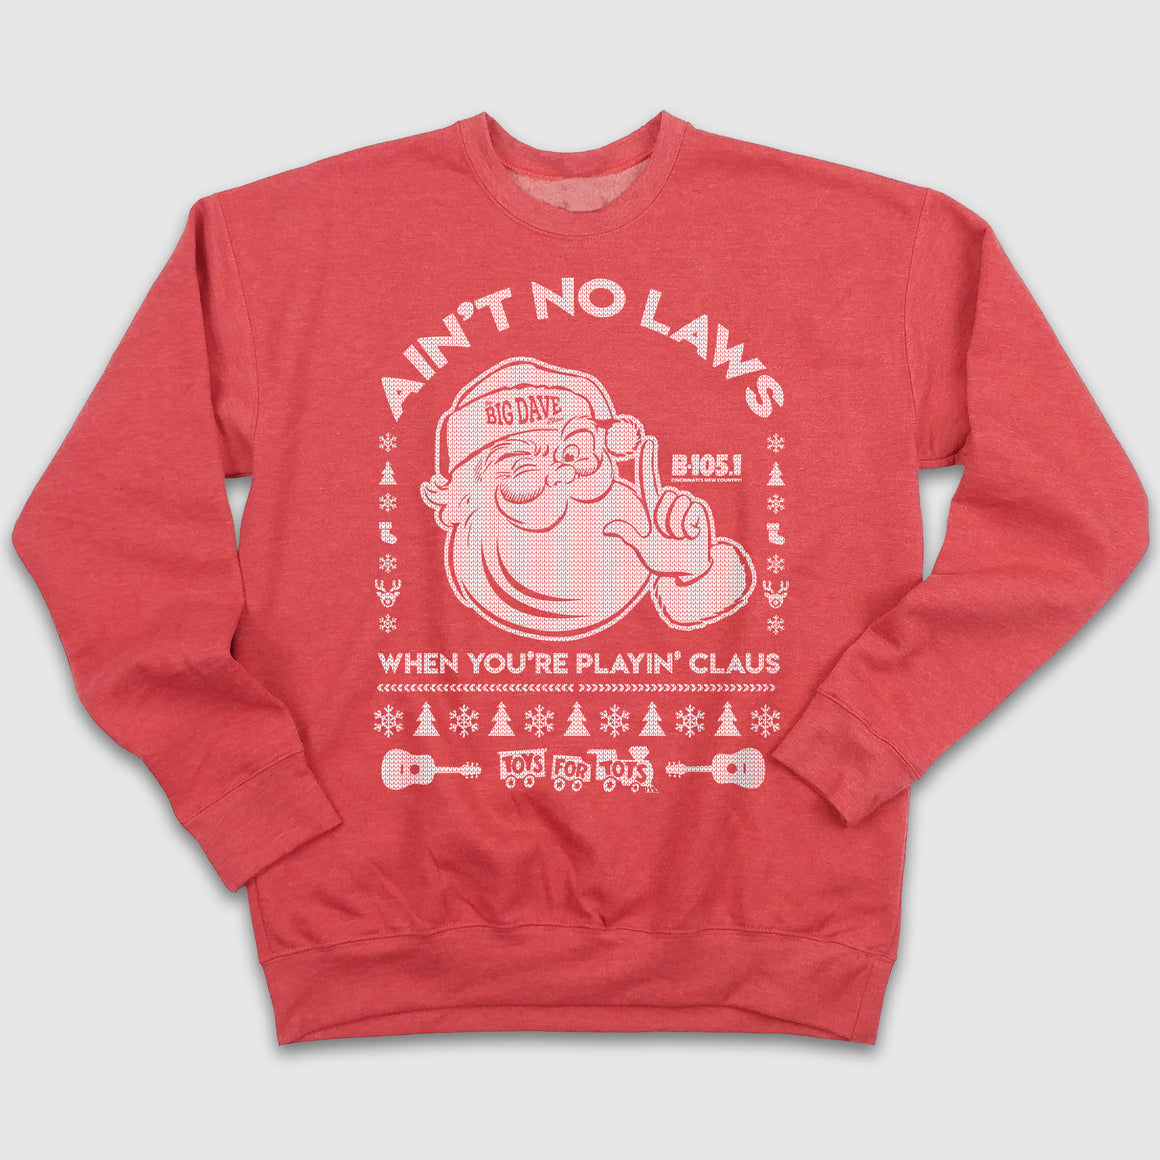 Ain't No Laws When You're Playin' Claus B-105 Ugly Christmas Sweatshirt - Cincy Shirts